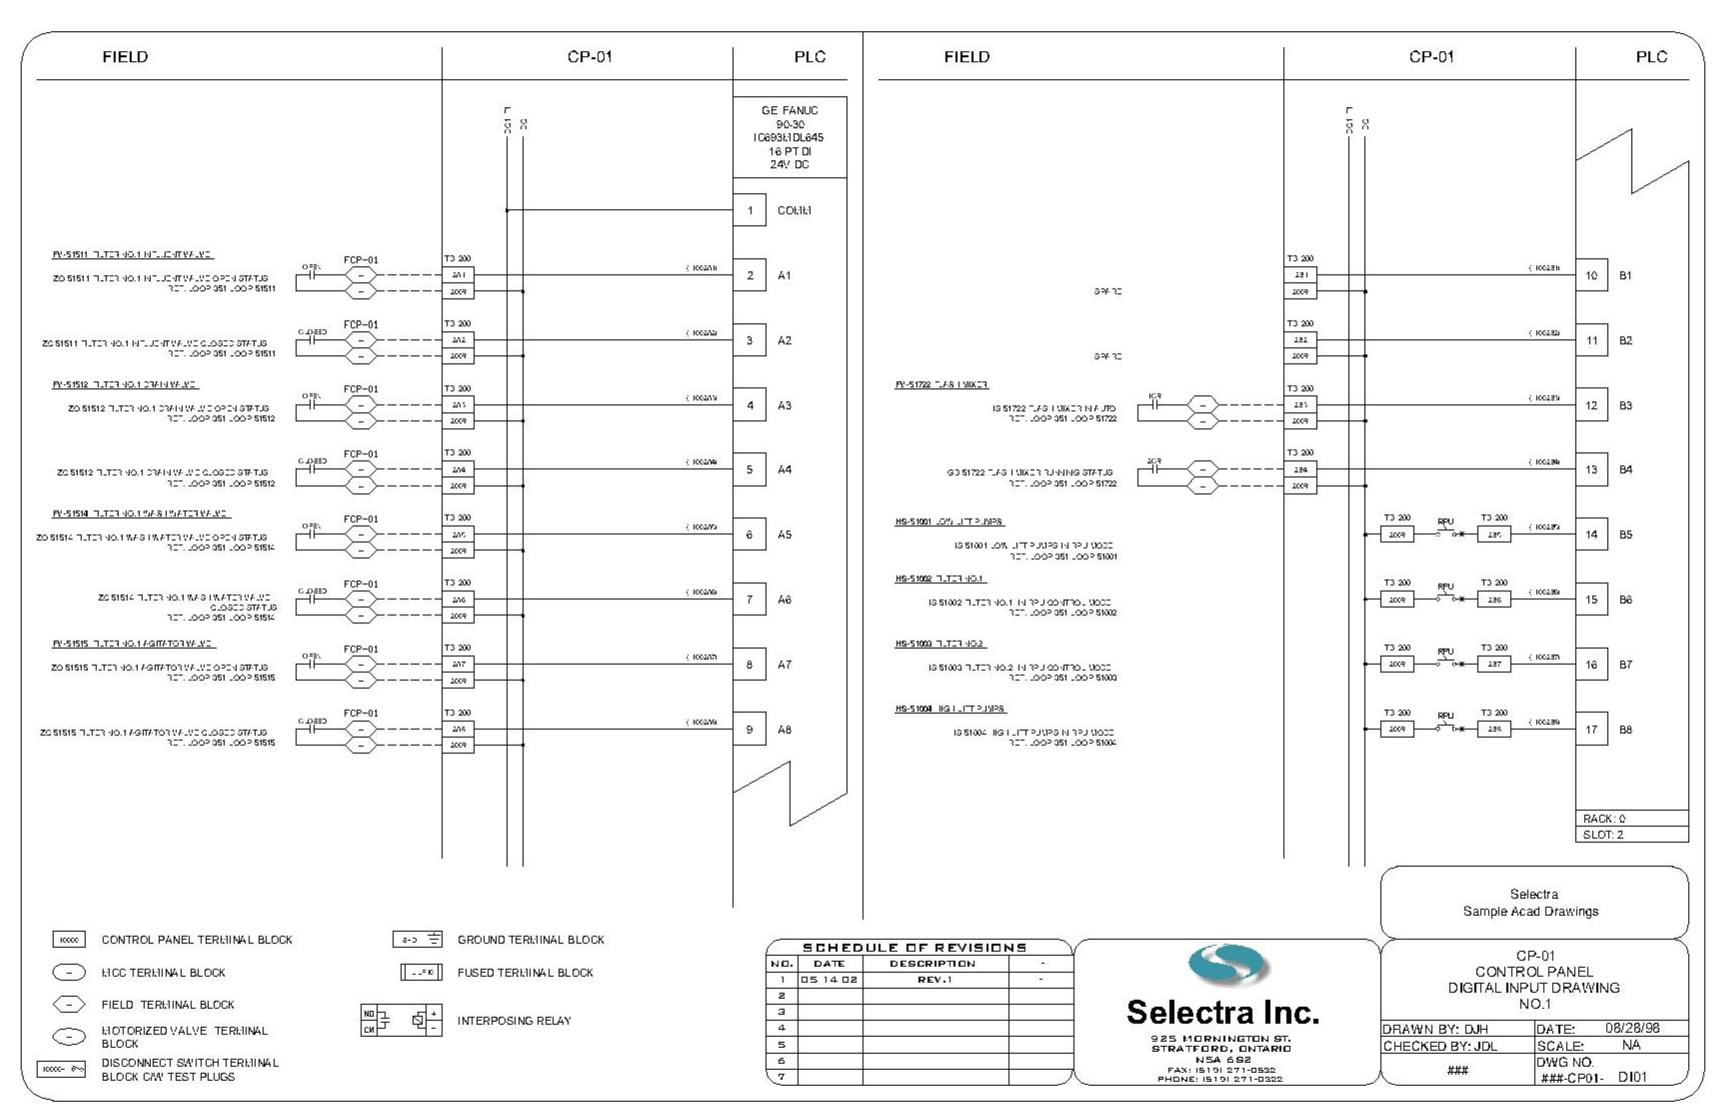 Plc Software in addition Ge Fanuc Di Model in addition Marvellous Design Simboli Schemi Elettrici Unifilari Carino Costruzione Riguardo A Simbolo U Schema Elettrico   Con Simbologia Schemi Elettrici Industriali E Marvellous Design Simboli Schemi Elettri moreover Industrial Automation Control Guides also Engineering Electrical Design Elements  posite Assemblies. on plcs electrical drawings wiring diagrams